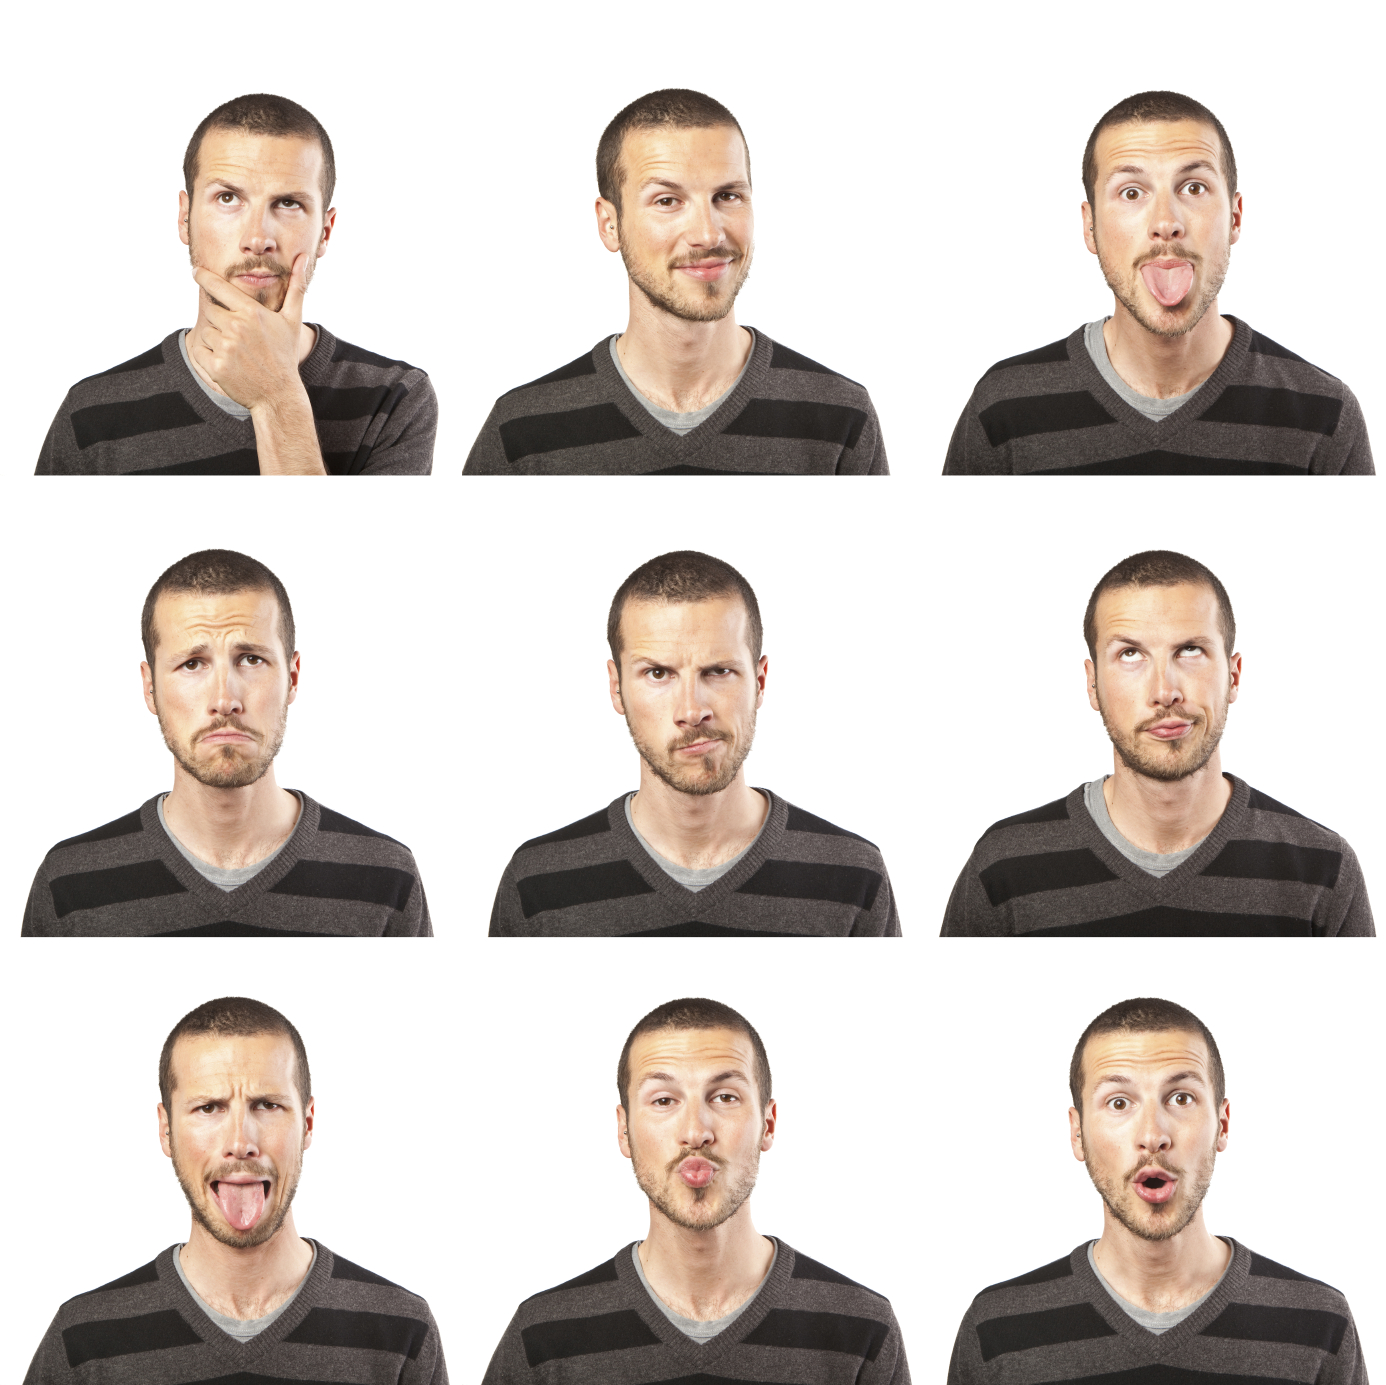 Communication Facial Expressions